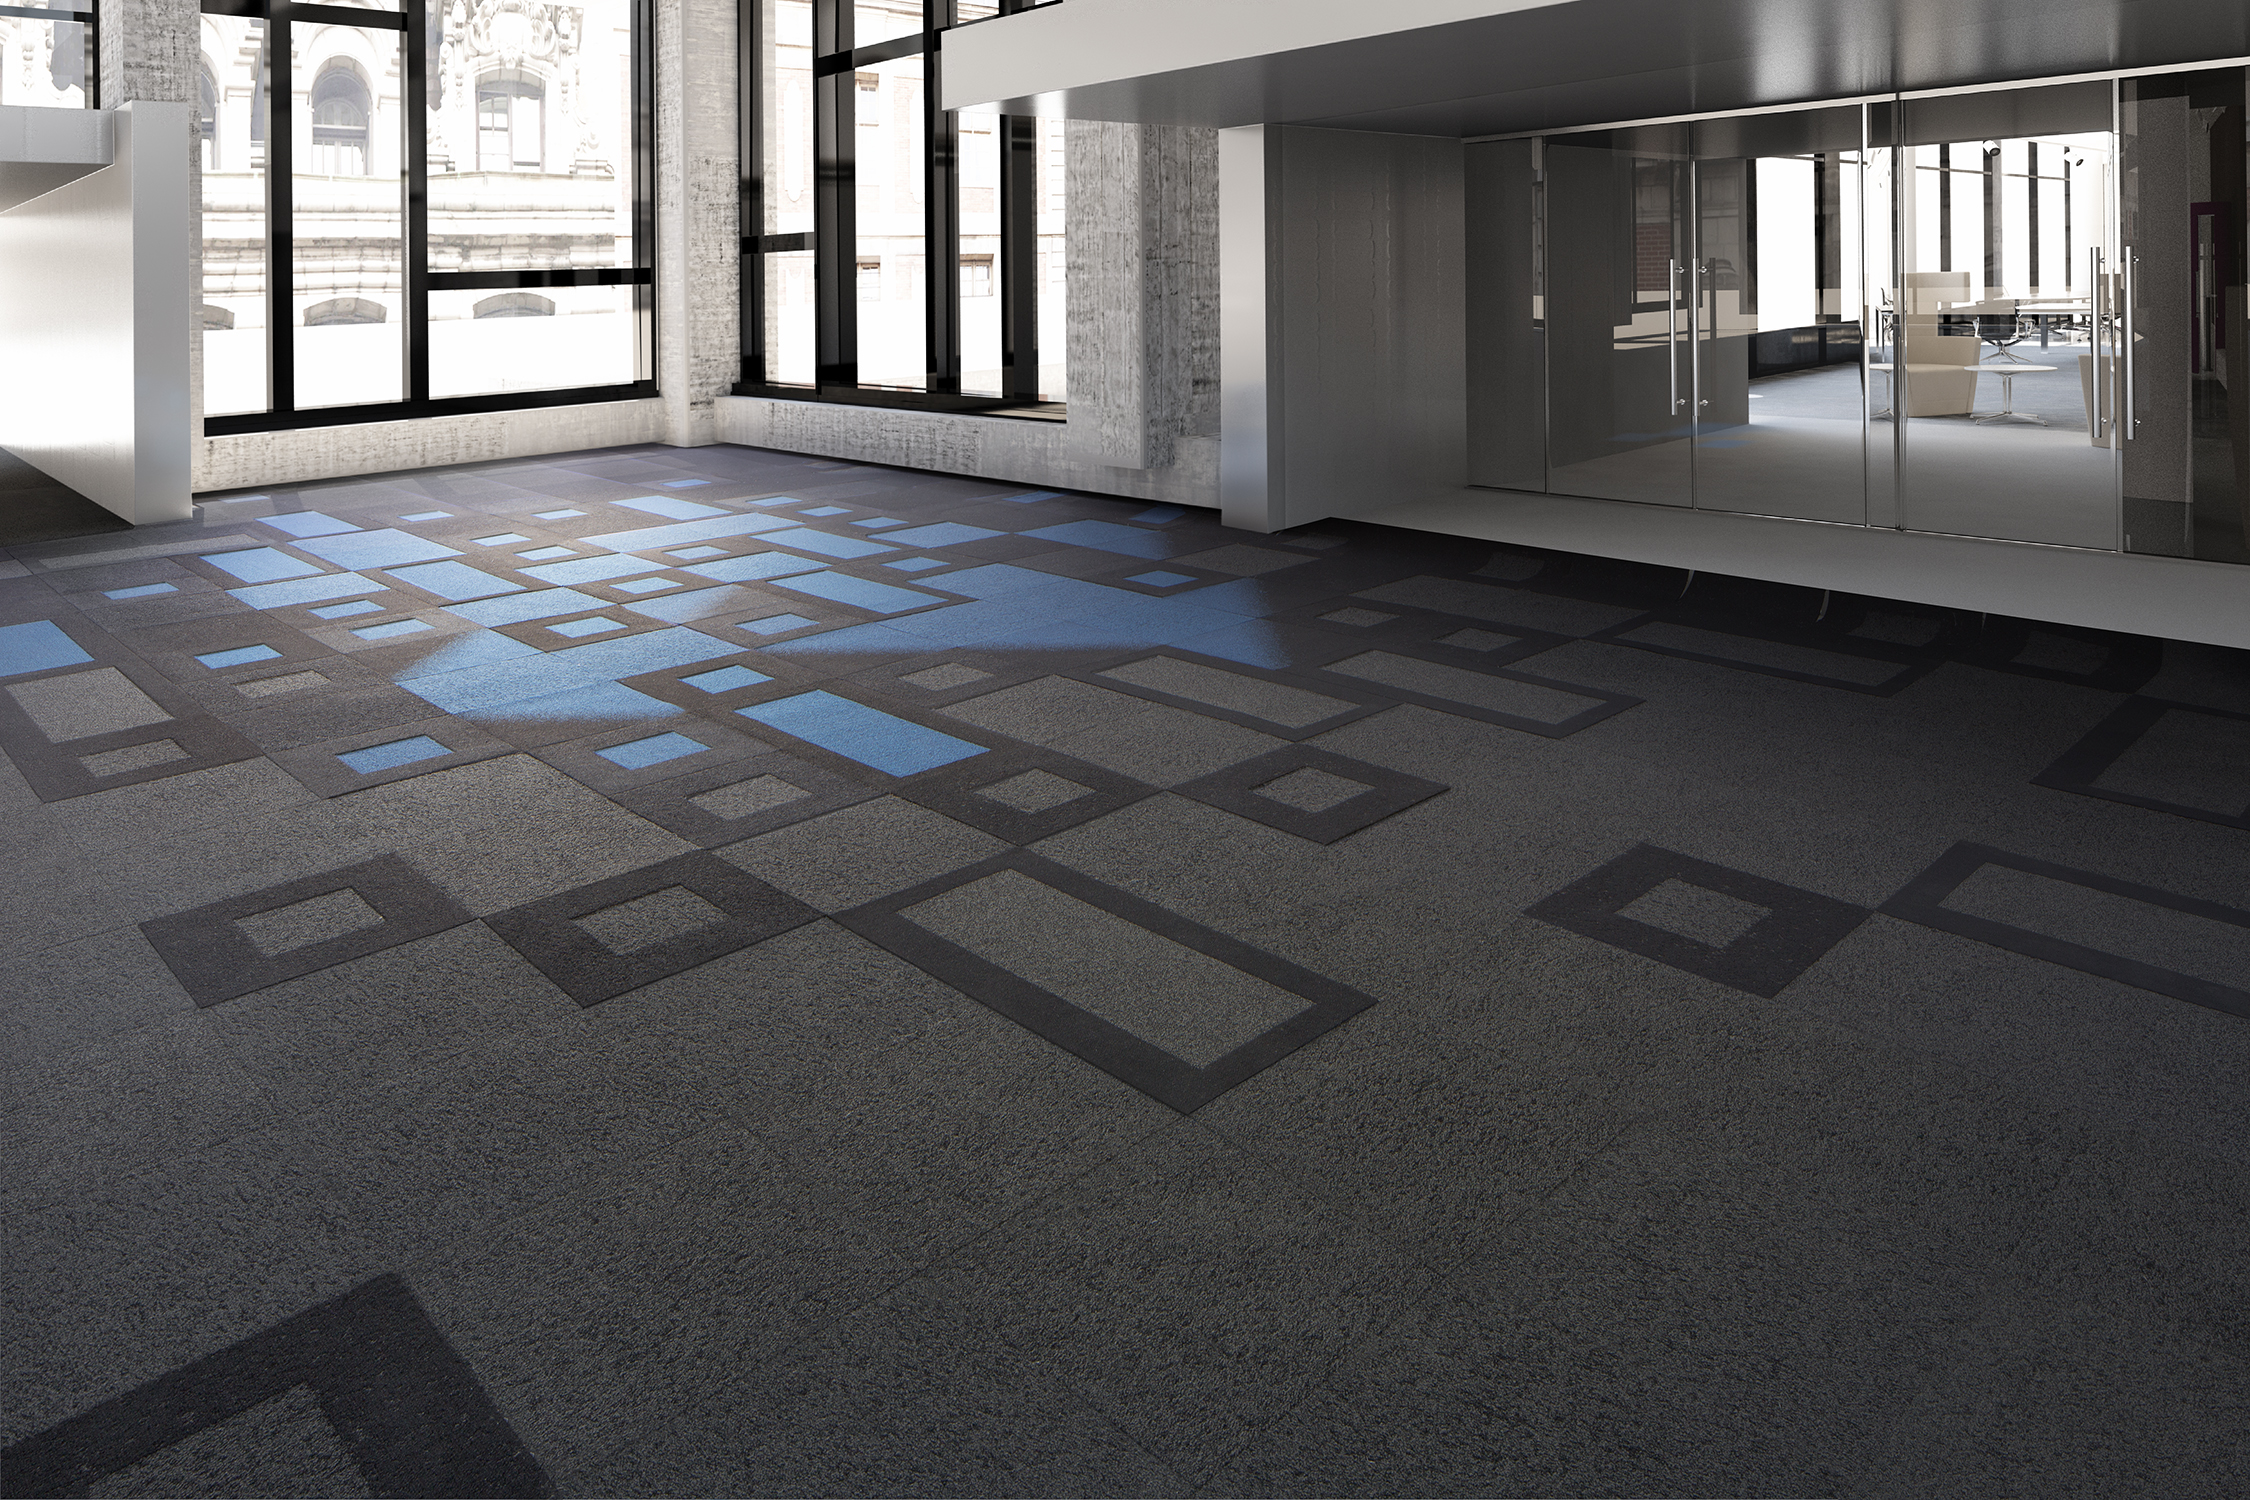 mohawk carpet tiles mohawk groupu0027s new 3d topography collection enables the creation of a  unique LREFONI